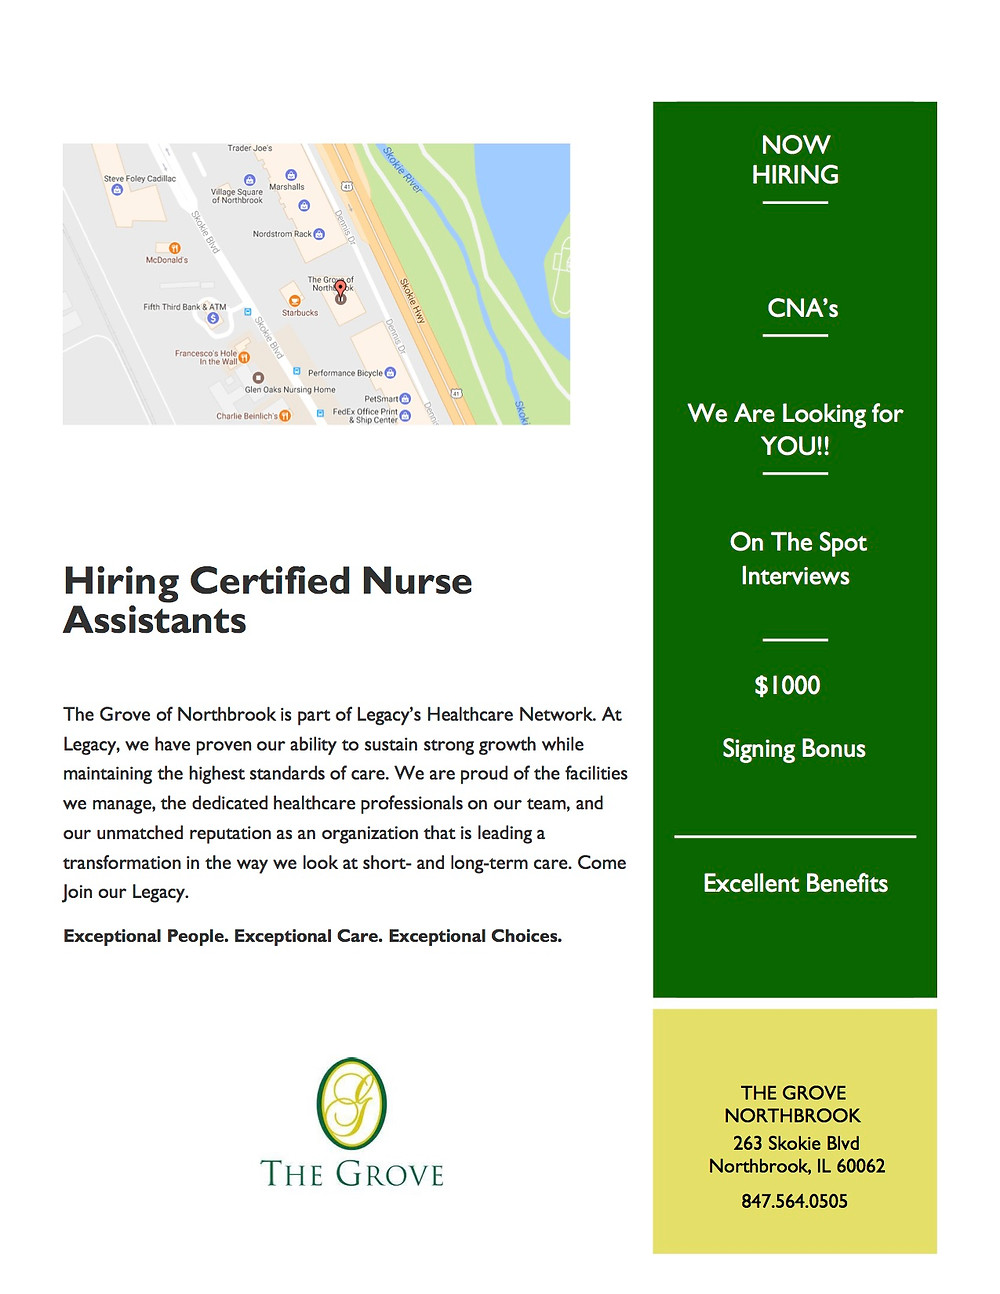 certified nursing assistant certification Chicago Illinois, cna certification chicago Illinois, cna certification Illinois, cna schools Illinois, cna schools Chicago Illinois, cna classes in Chicago Illinois, cna classes Illinois, 4 week cna classes in Chicago Illinois, 4 week cna classes, online cna classes